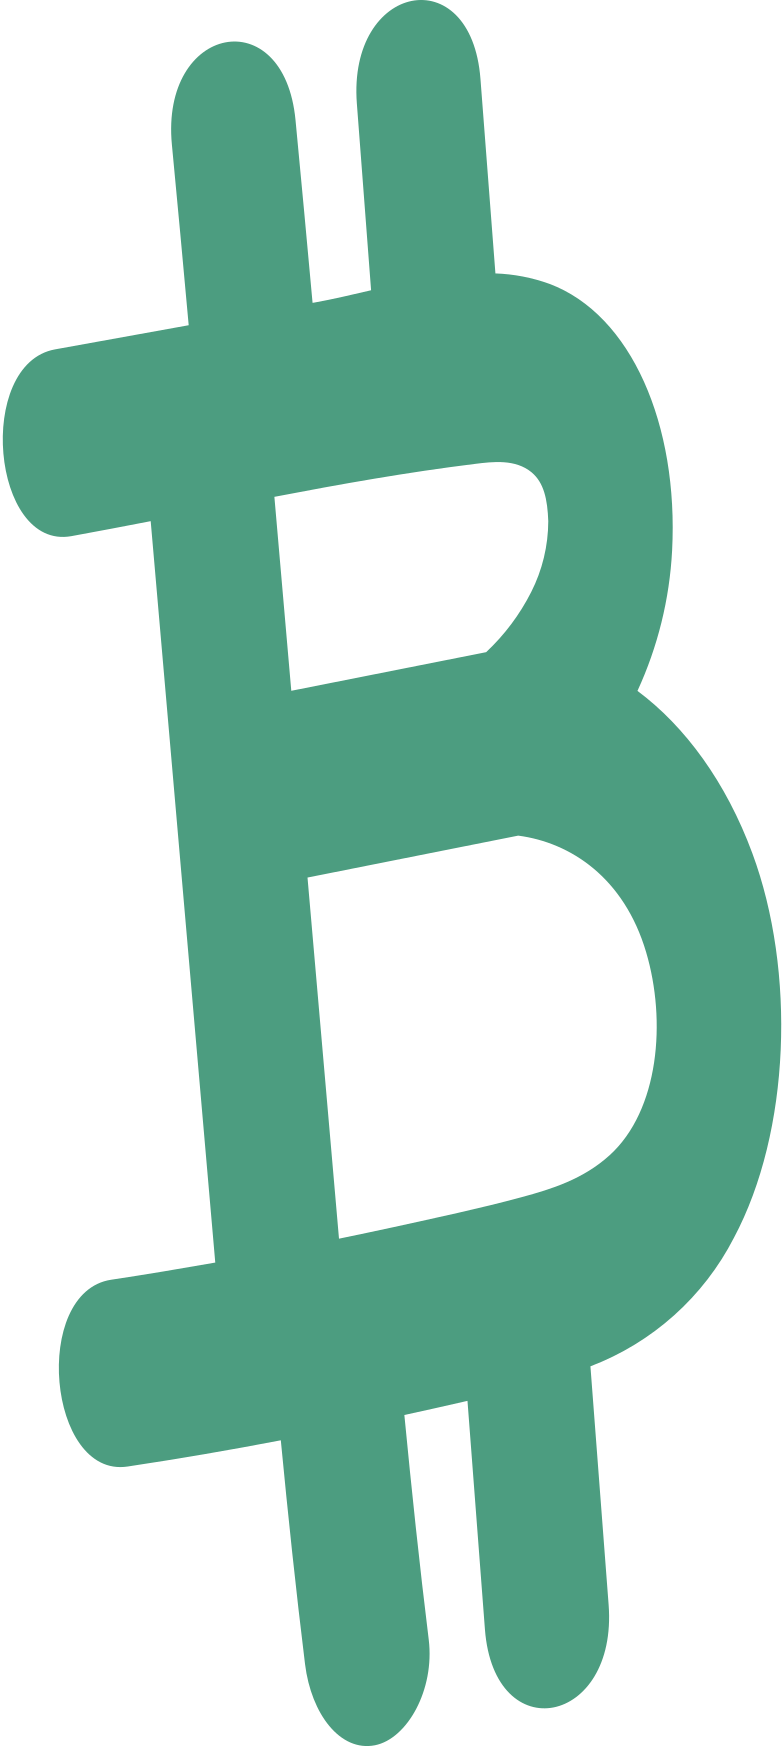 style bitcoin sign Vector images in PNG and SVG | Icons8 Illustrations